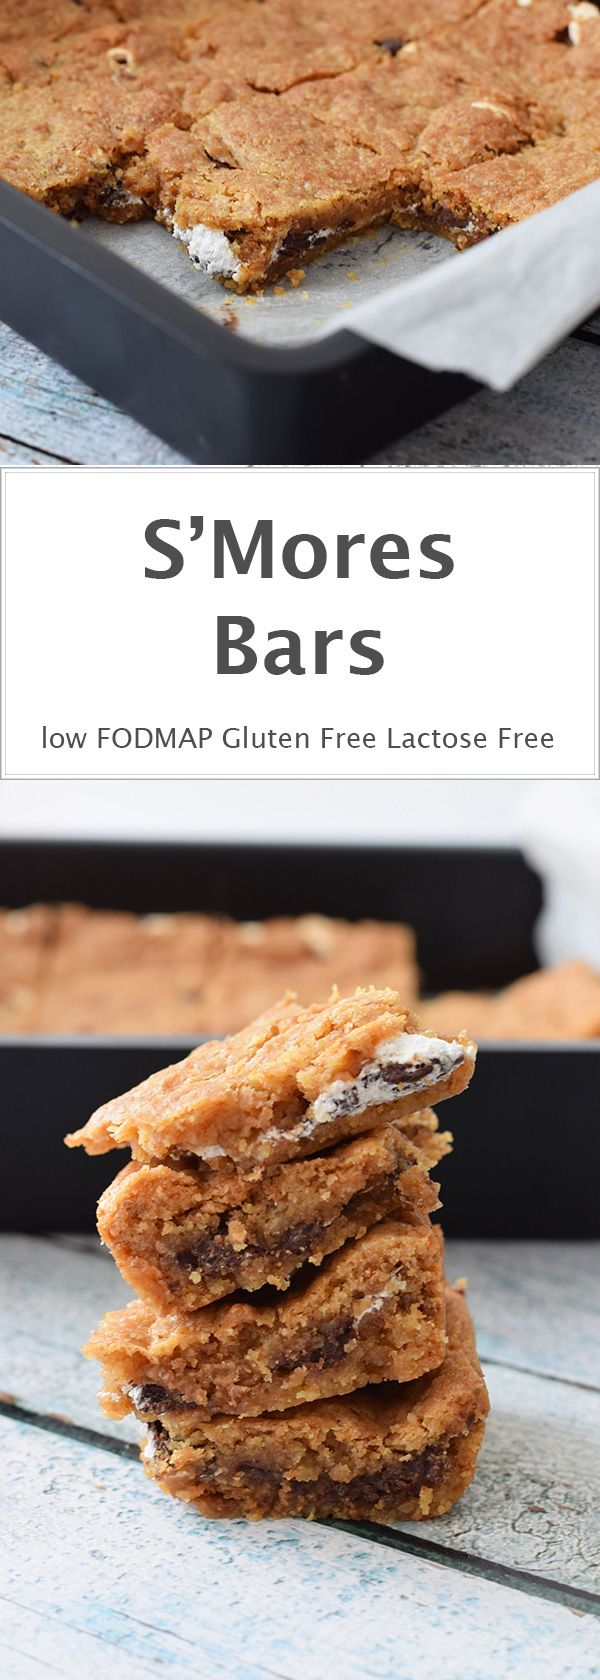 A perfect summer dessert to have with a scoop of ice cream on top. Low FODMAP, gluten-free and lactose-free.